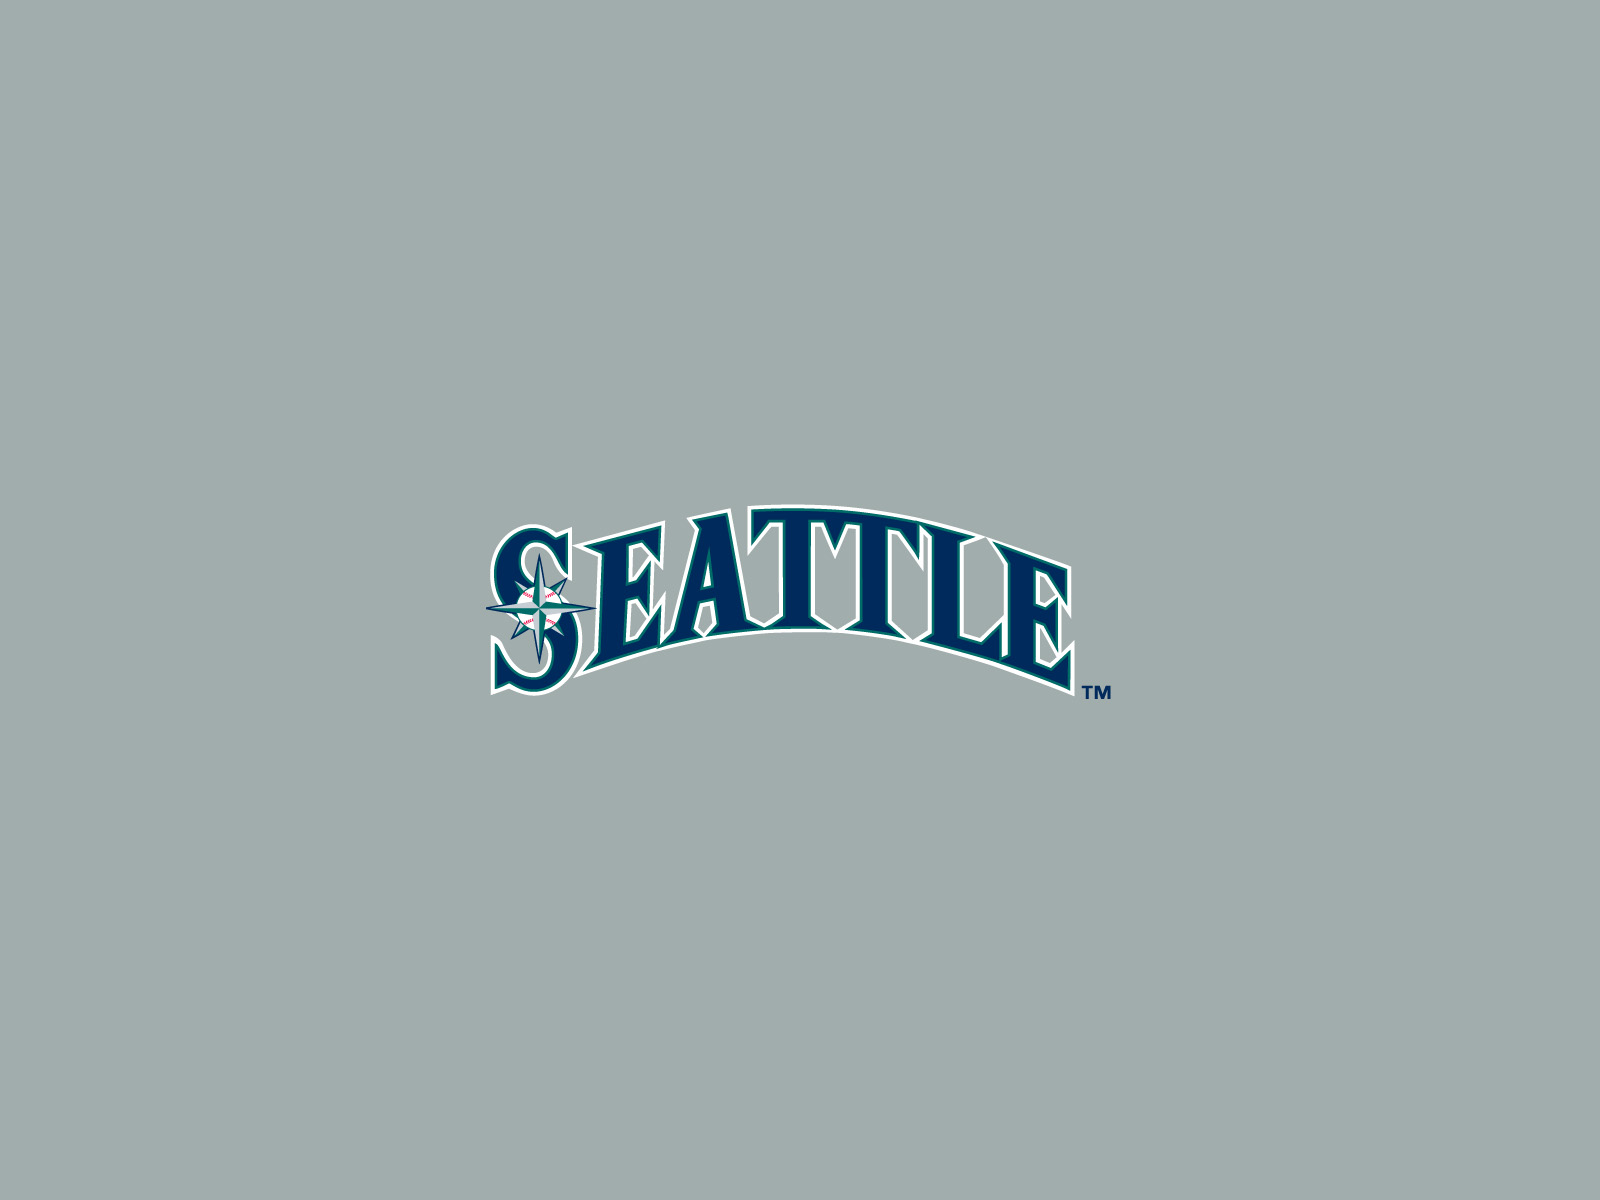 1600x1200 - Seattle Mariners Wallpapers 9